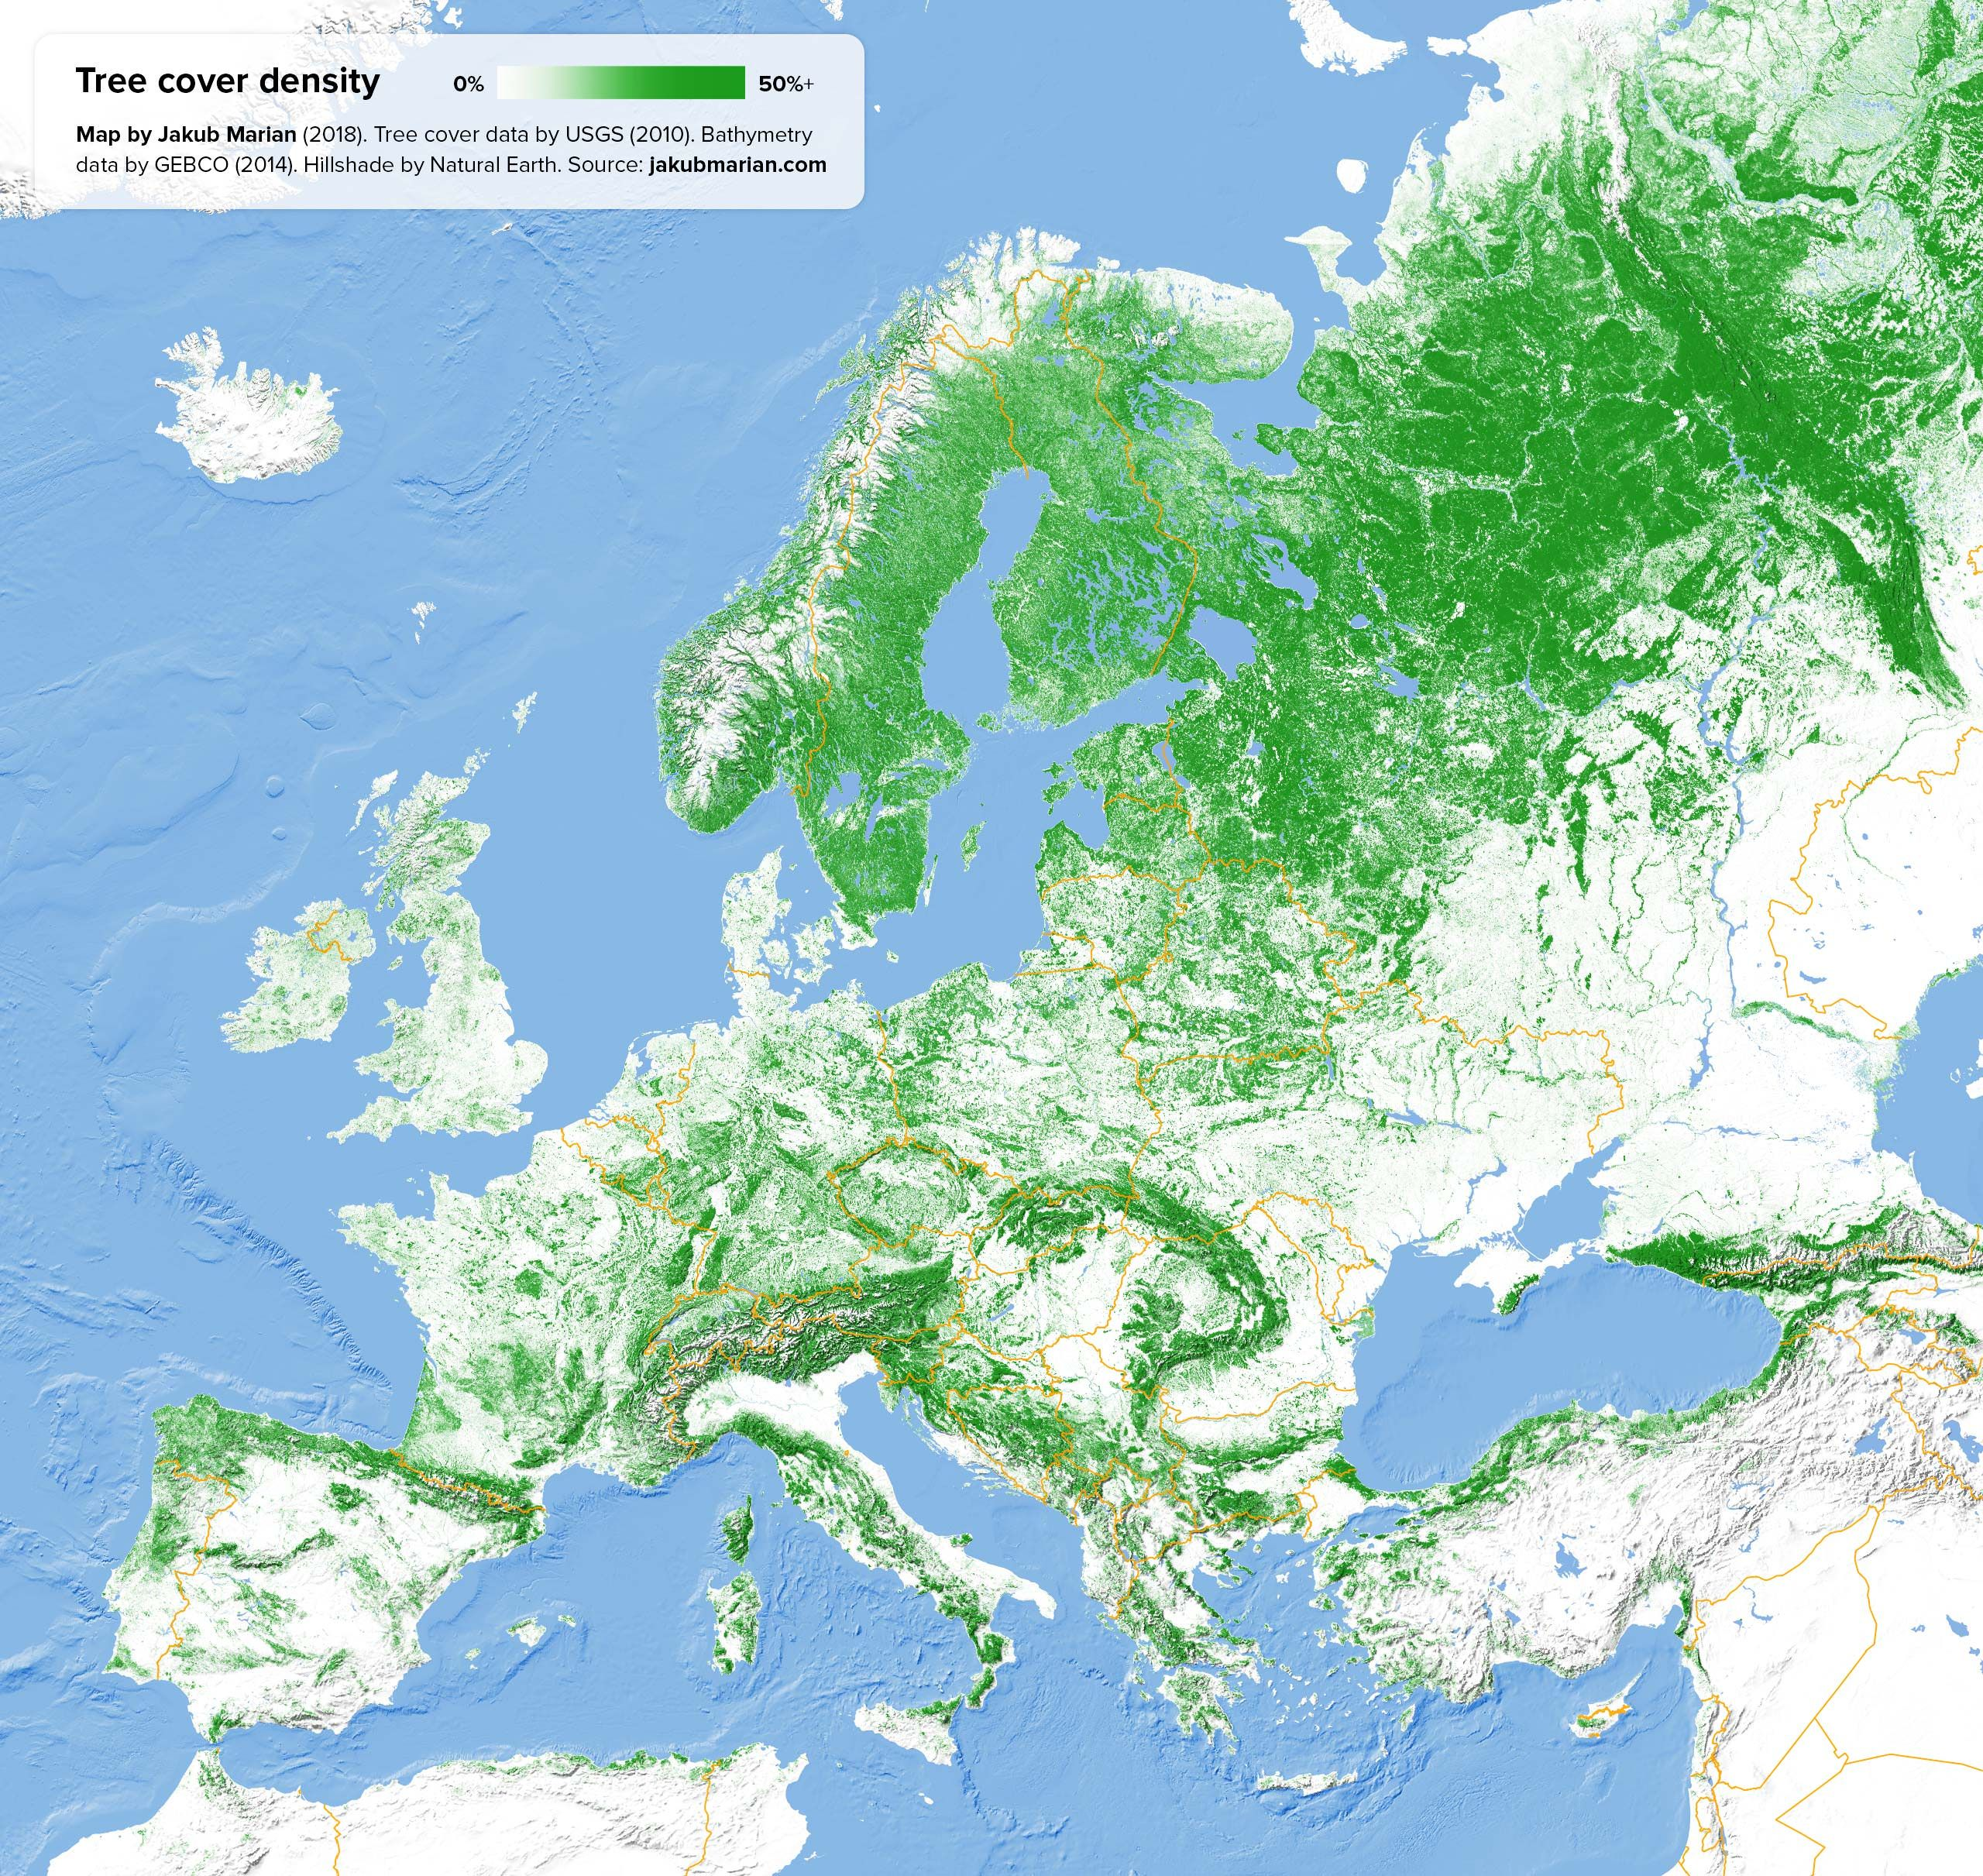 Tree Cover Density of Europe by Jakub Marian #map #europe #forests ...